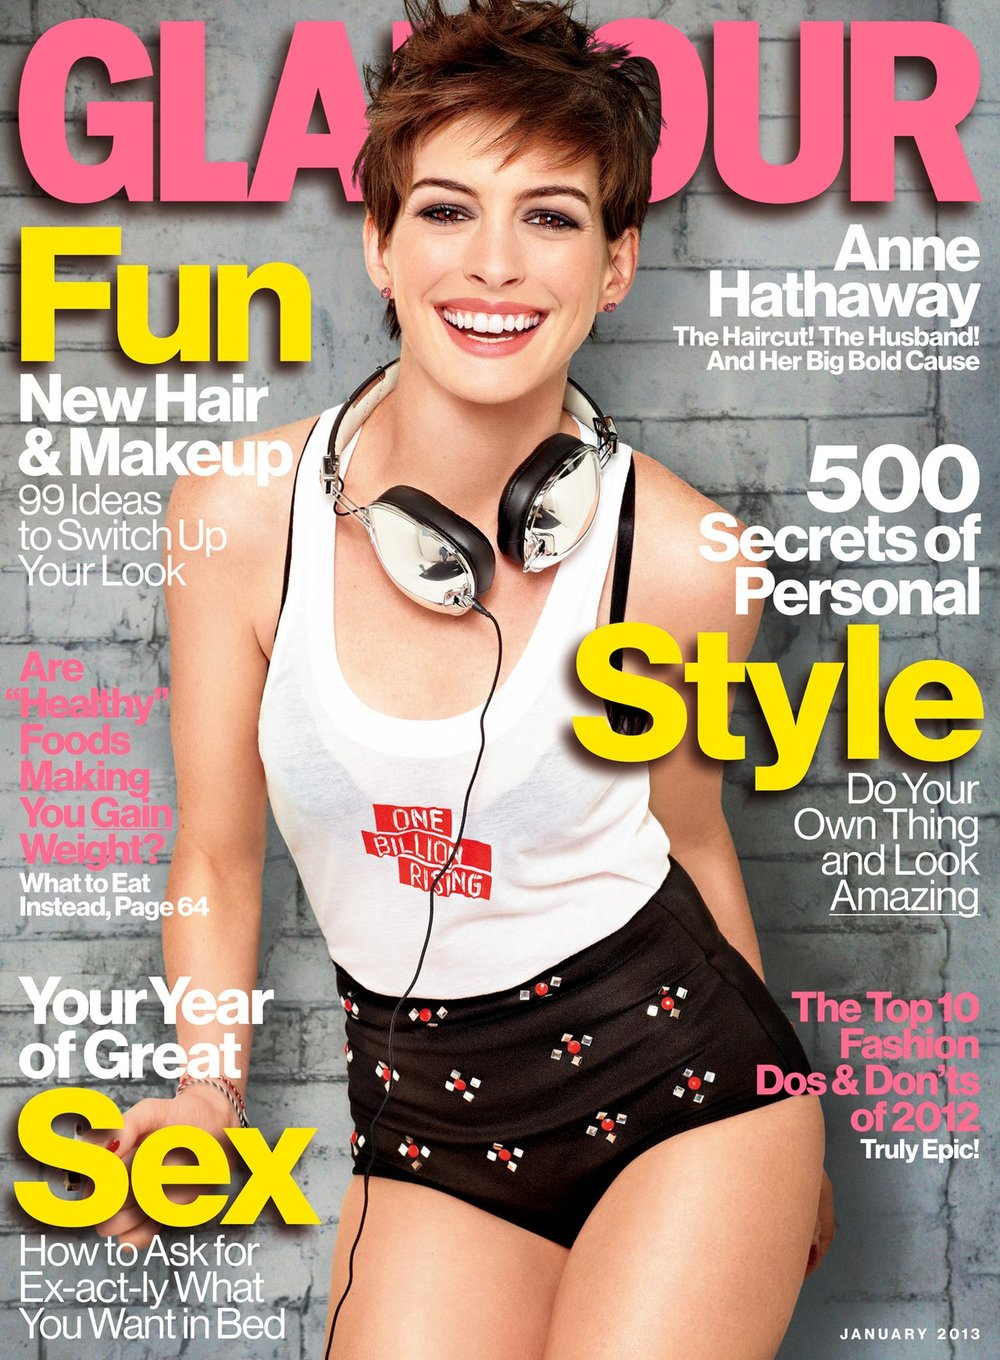 fashion-2012-12-january-glamour-cover-main.jpg